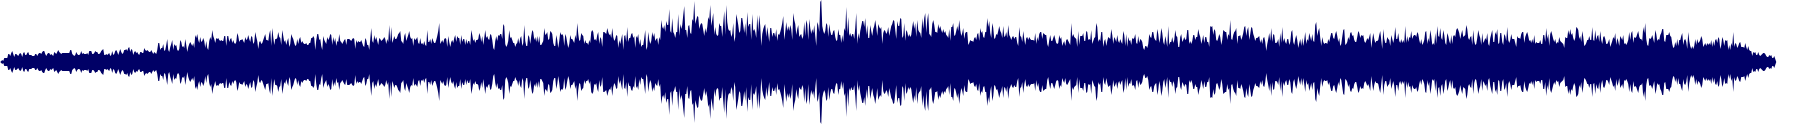 waveform of track #84762